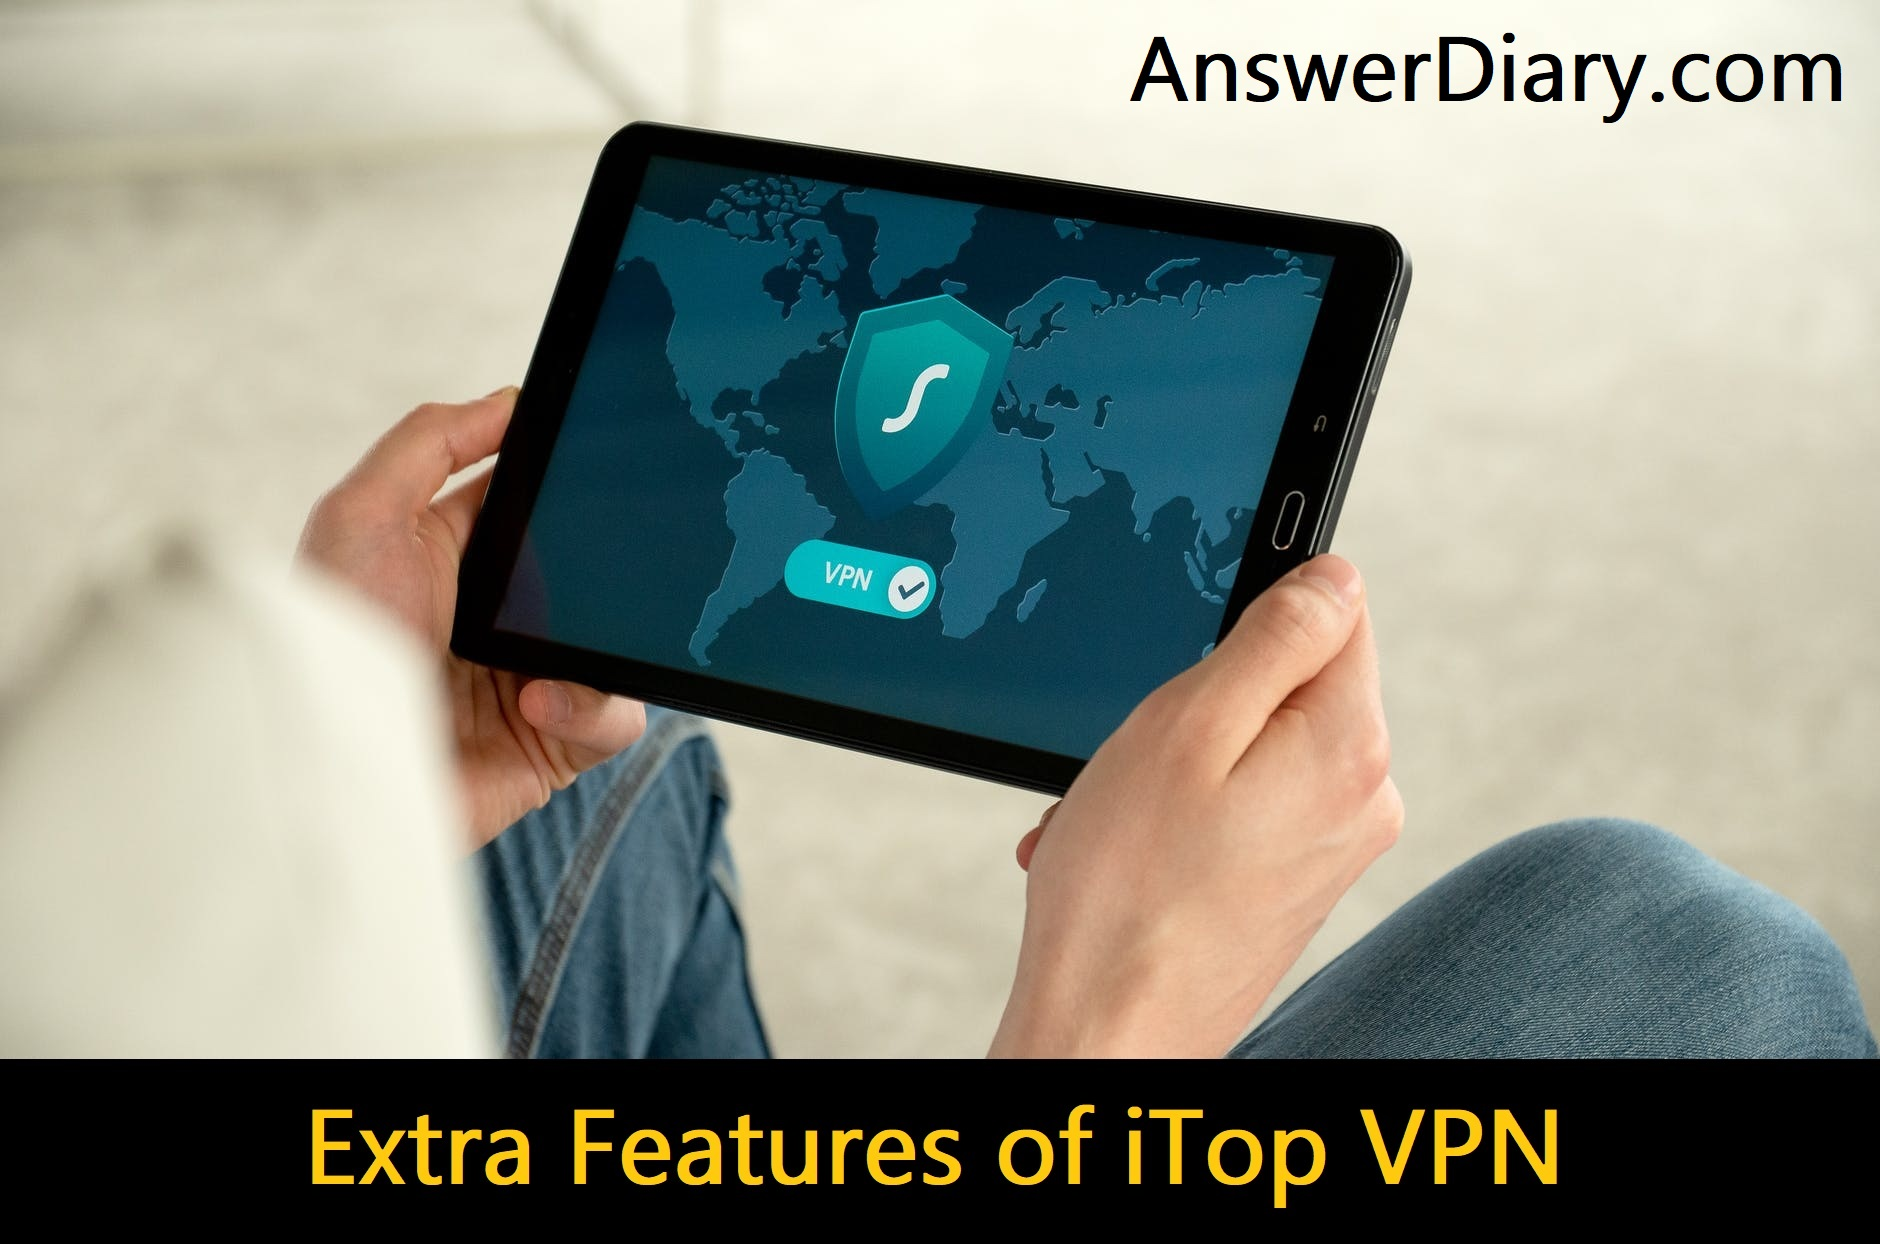 Extra Features of iTop VPN